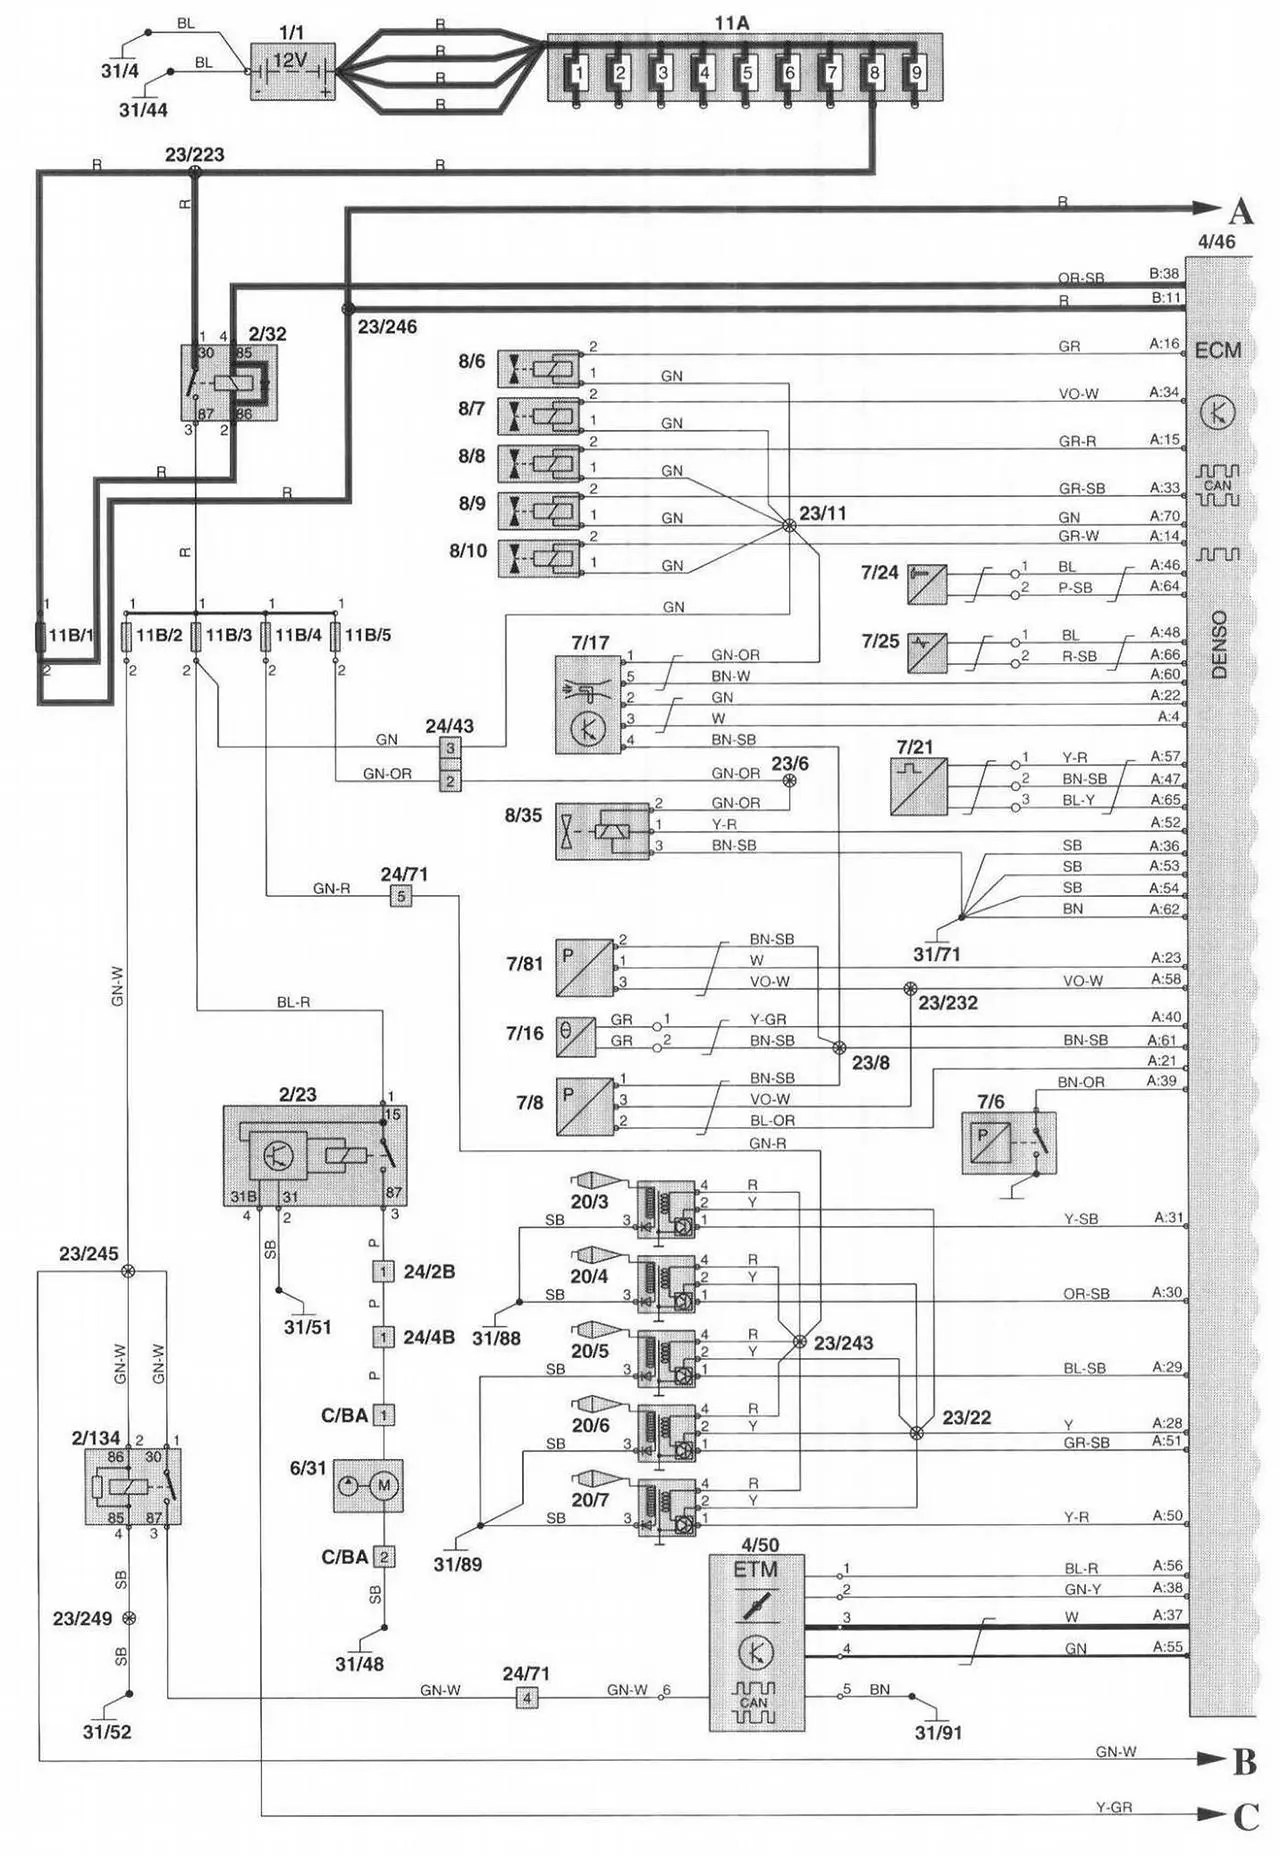 hight resolution of wiring diagram volvo v70 wiring diagram blog volvo v70 wiring diagram 1999 2003 volvo fuse diagram